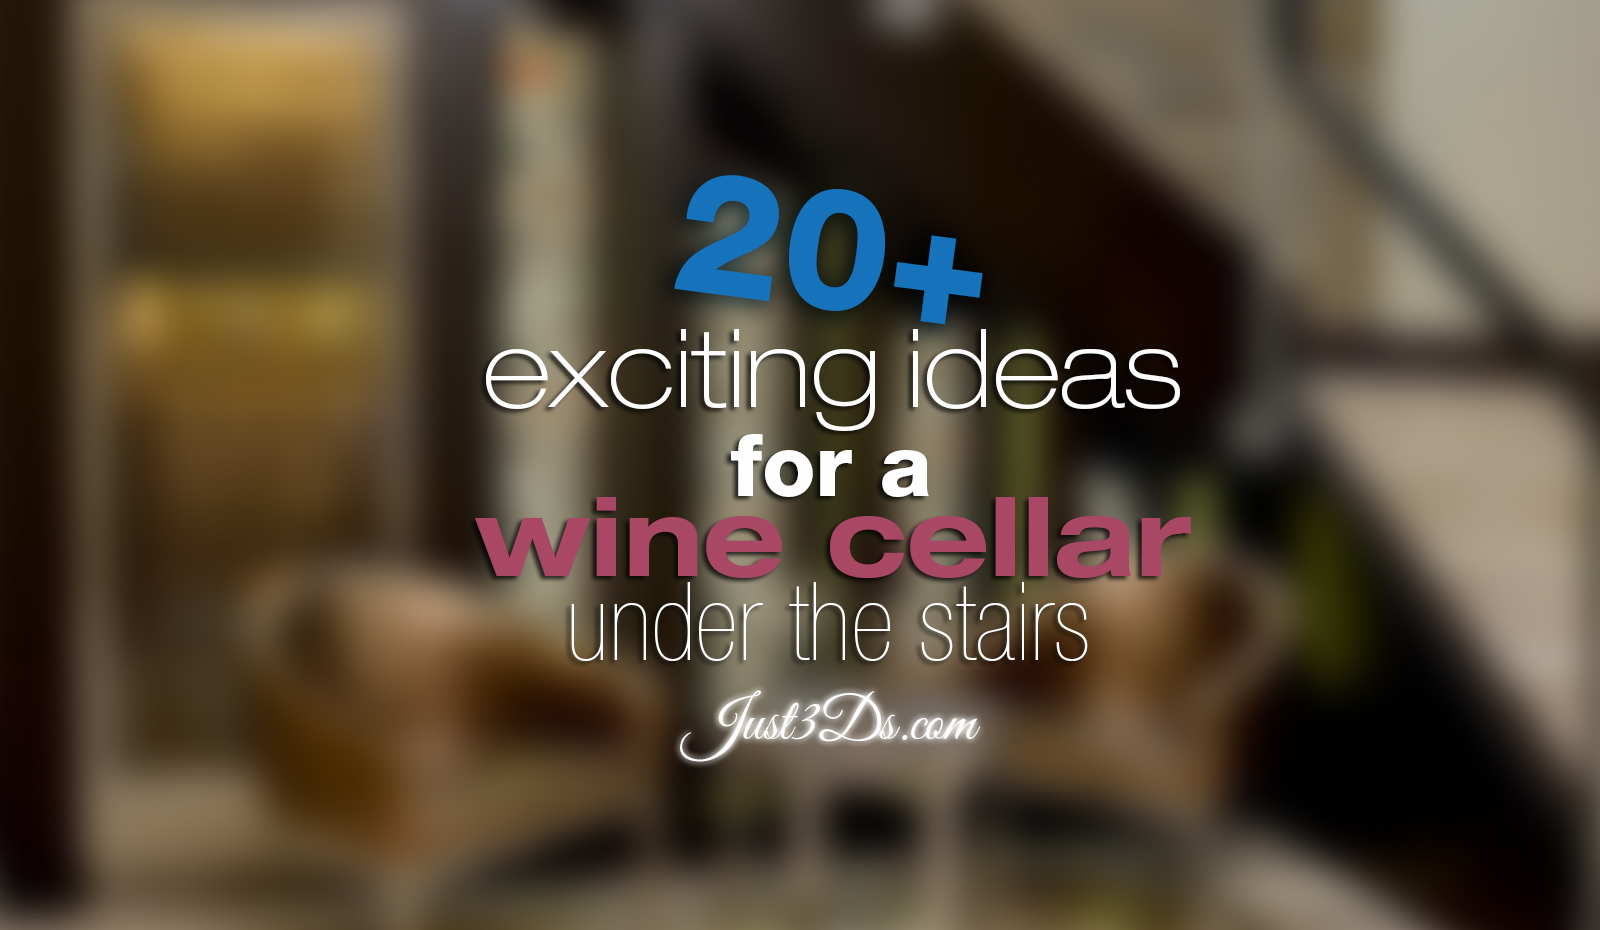 20+ exciting ideas for a wine cellar under the stairs